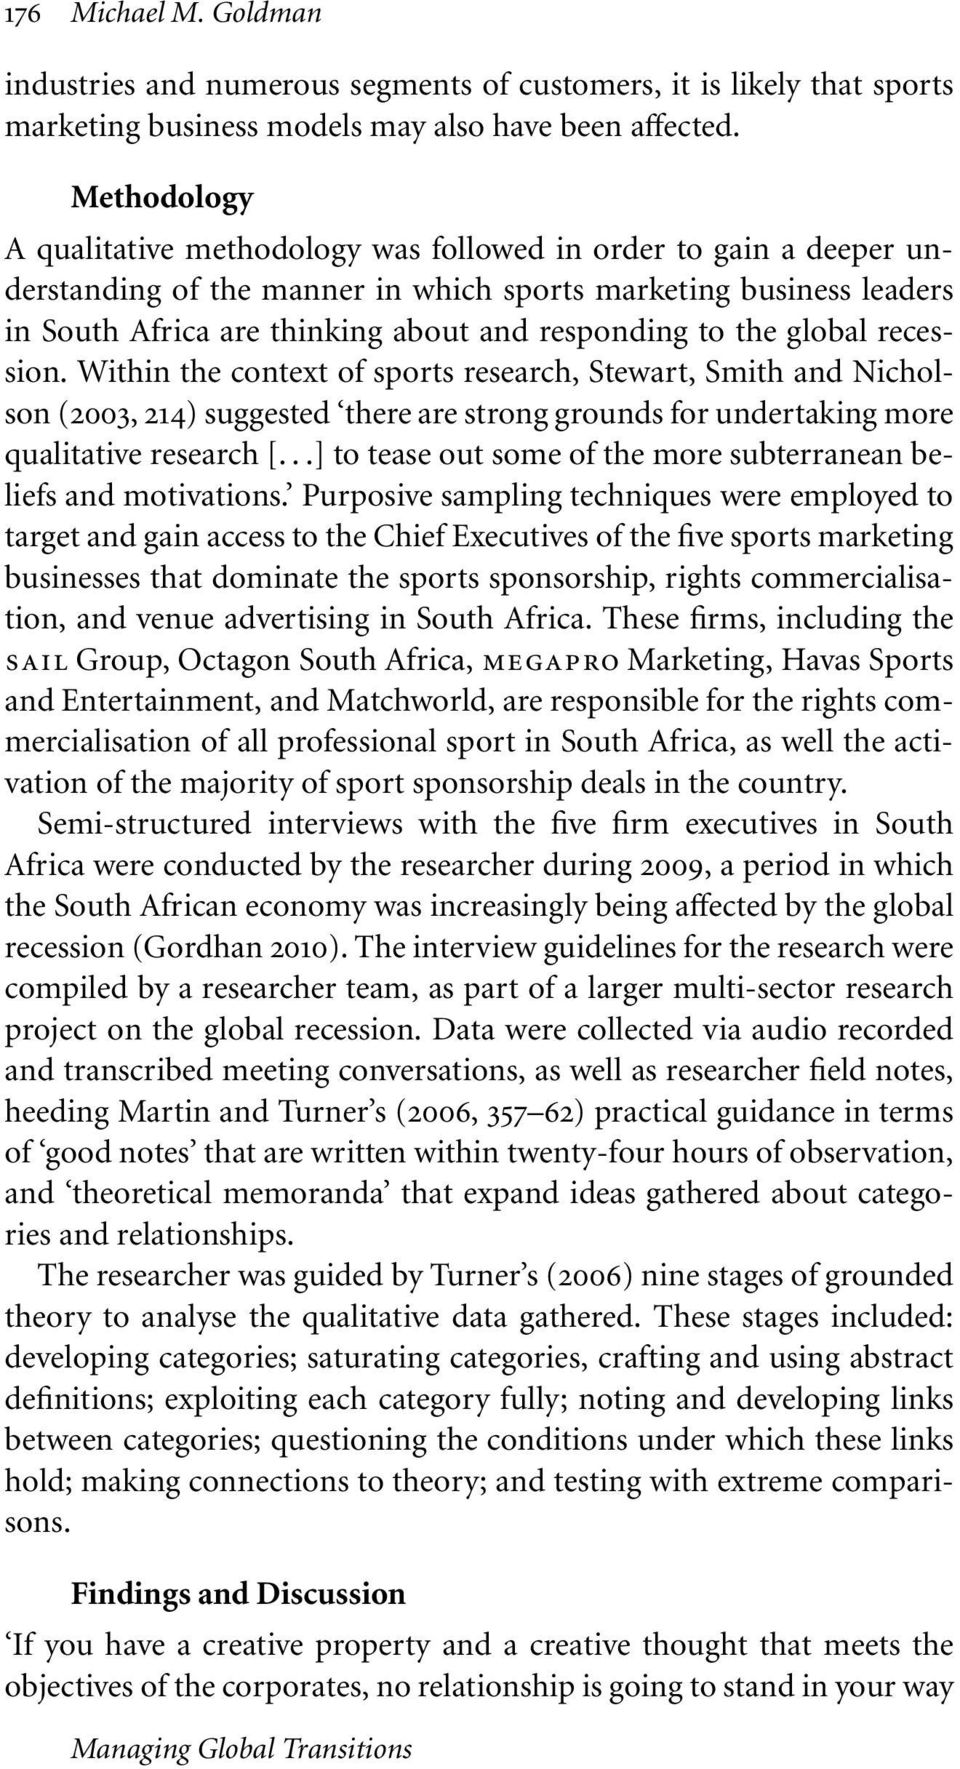 to the global recession. Within the context of sports research, Stewart, Smith and Nicholson (2003, 214) suggested there are strong grounds for undertaking more qualitative research [.